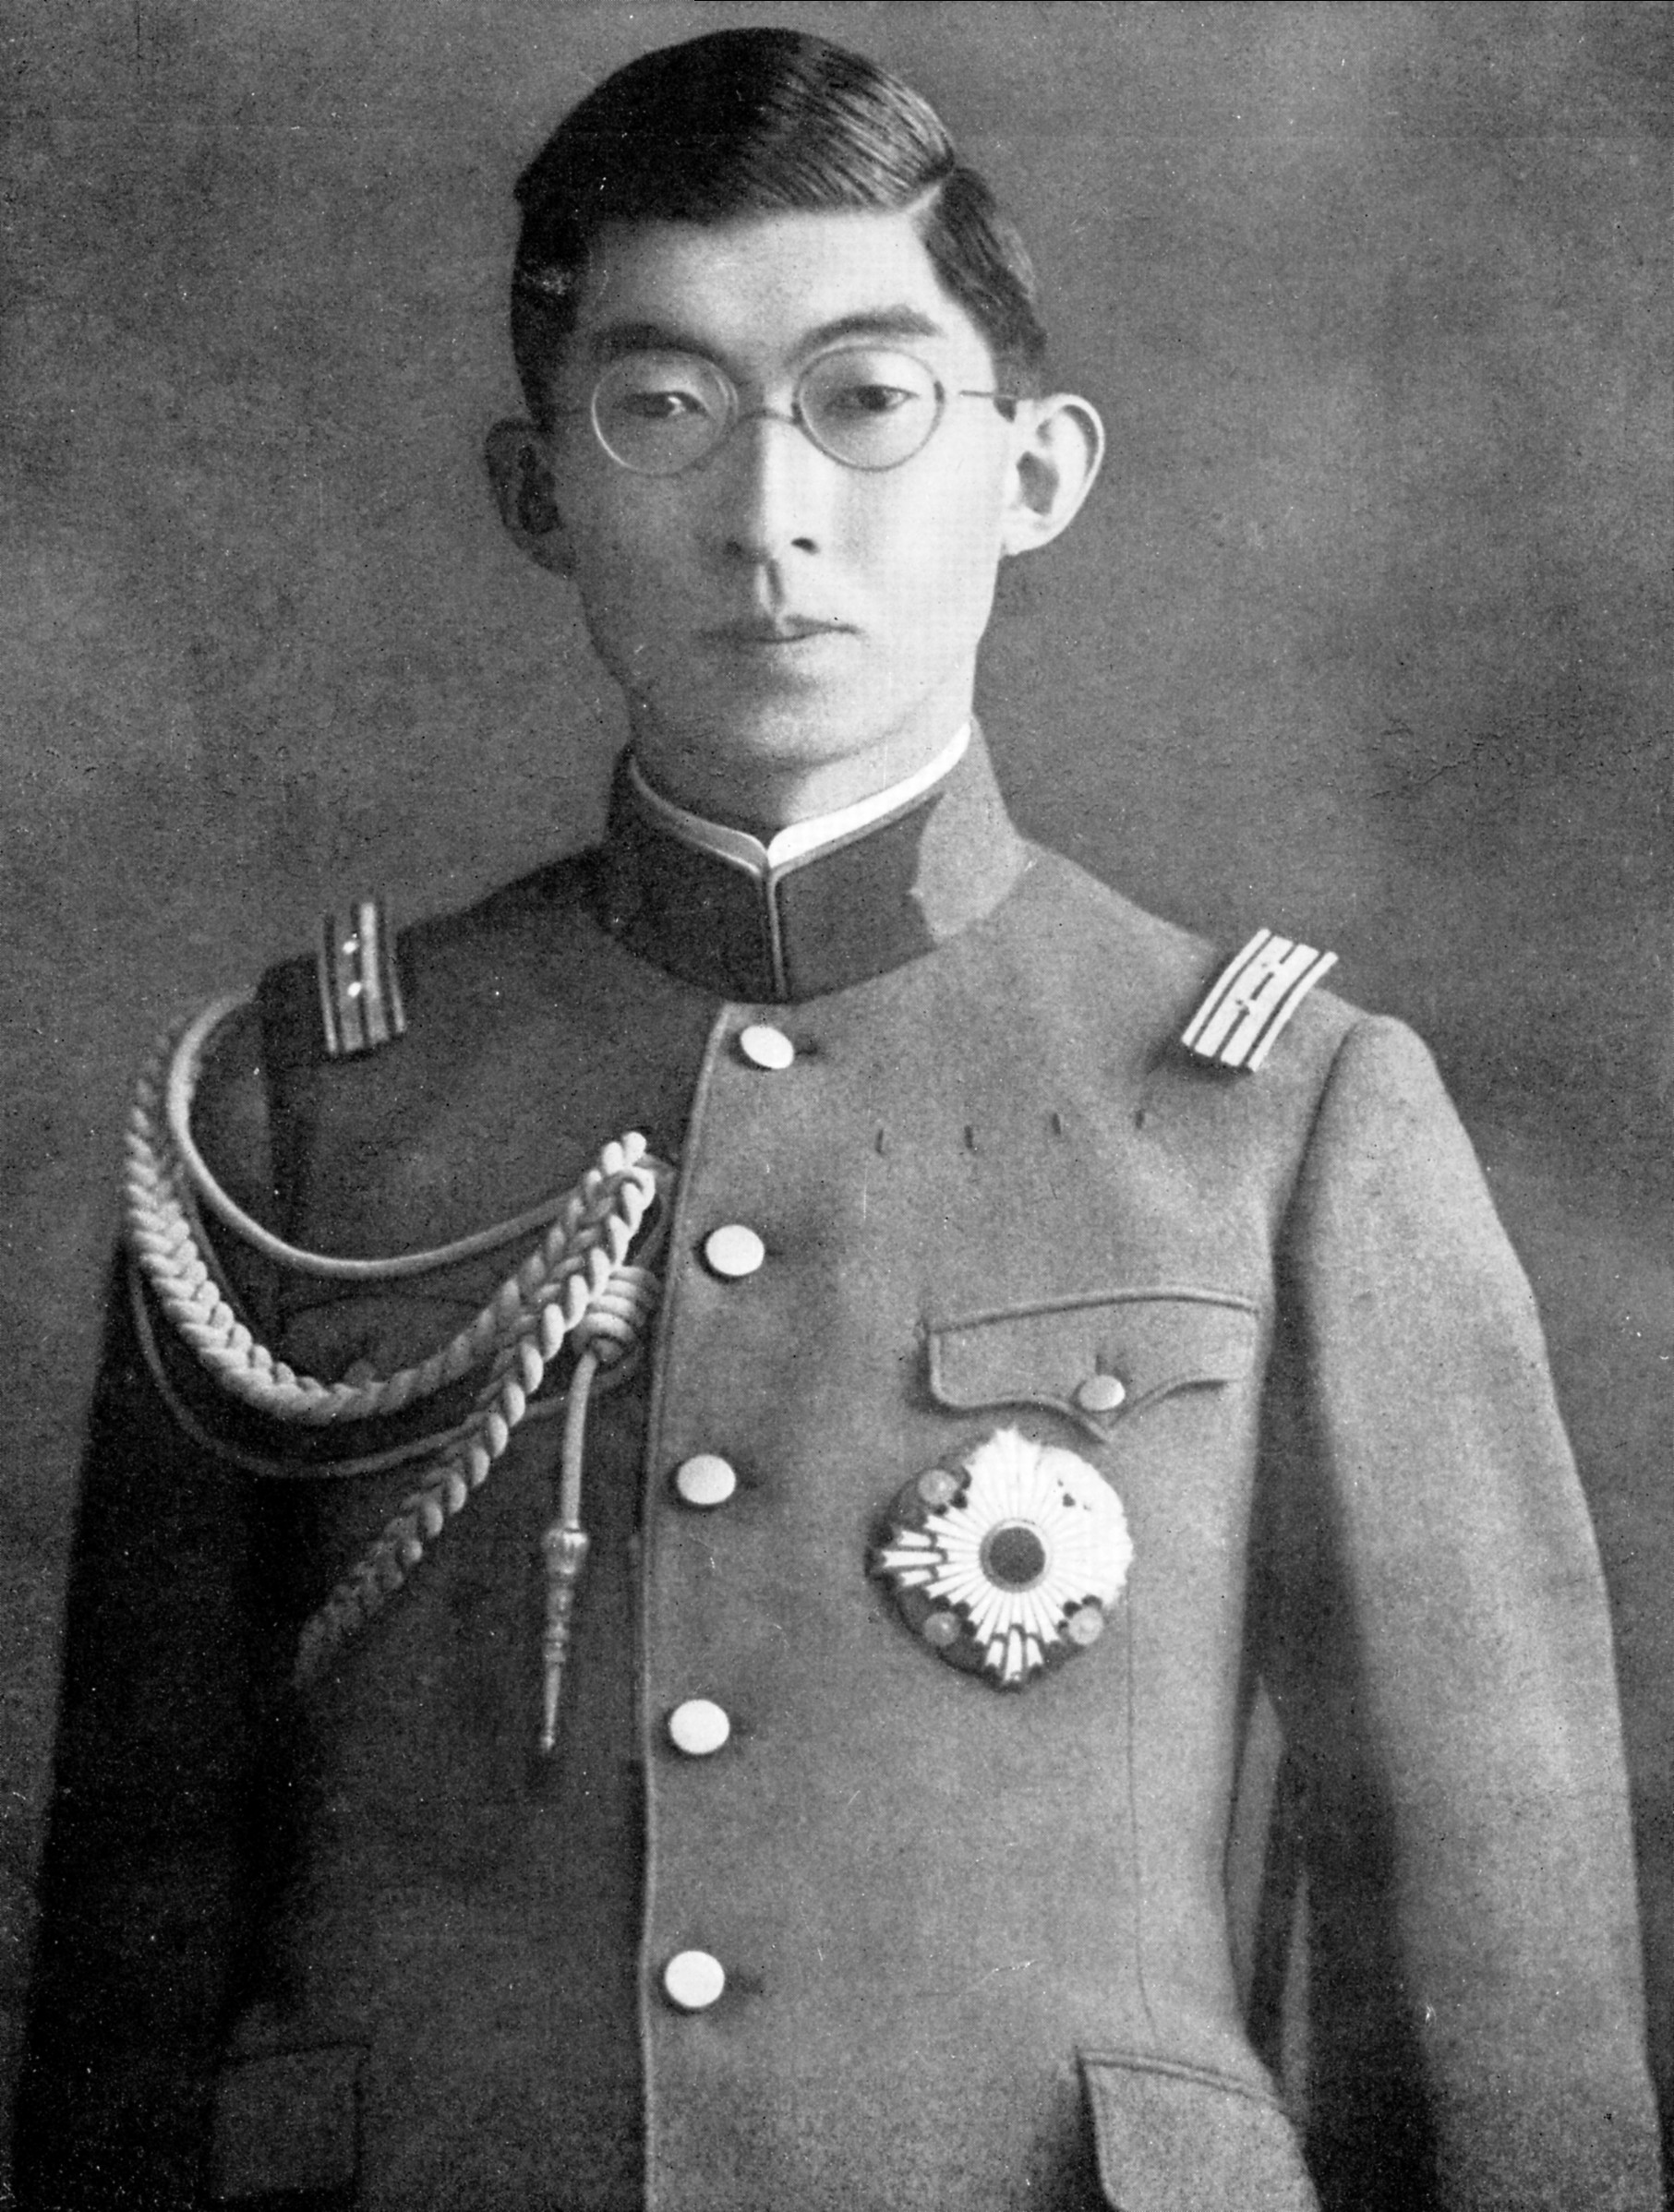 hirohito Hirohito was the 124th emperor of japan according to the traditional order of succession, reigning from 25 december 1926, until his death on 7 january 1989.